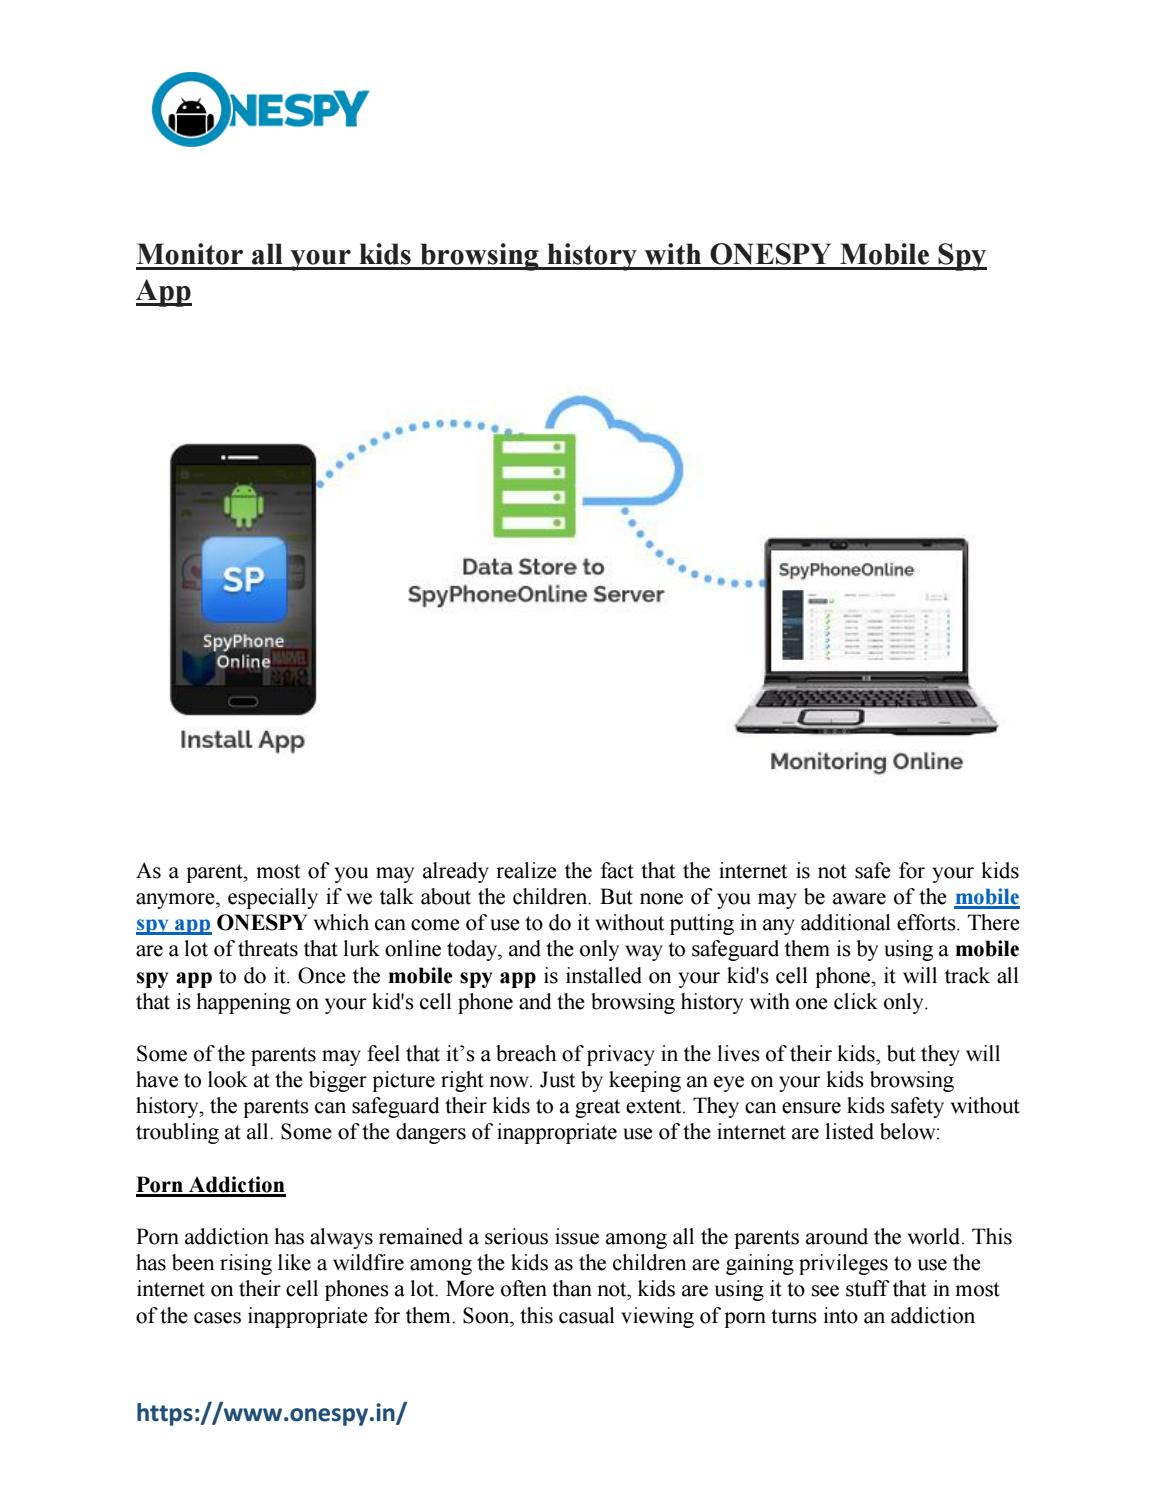 Mobile Spy App to monitor your child's activity - ONESPY by